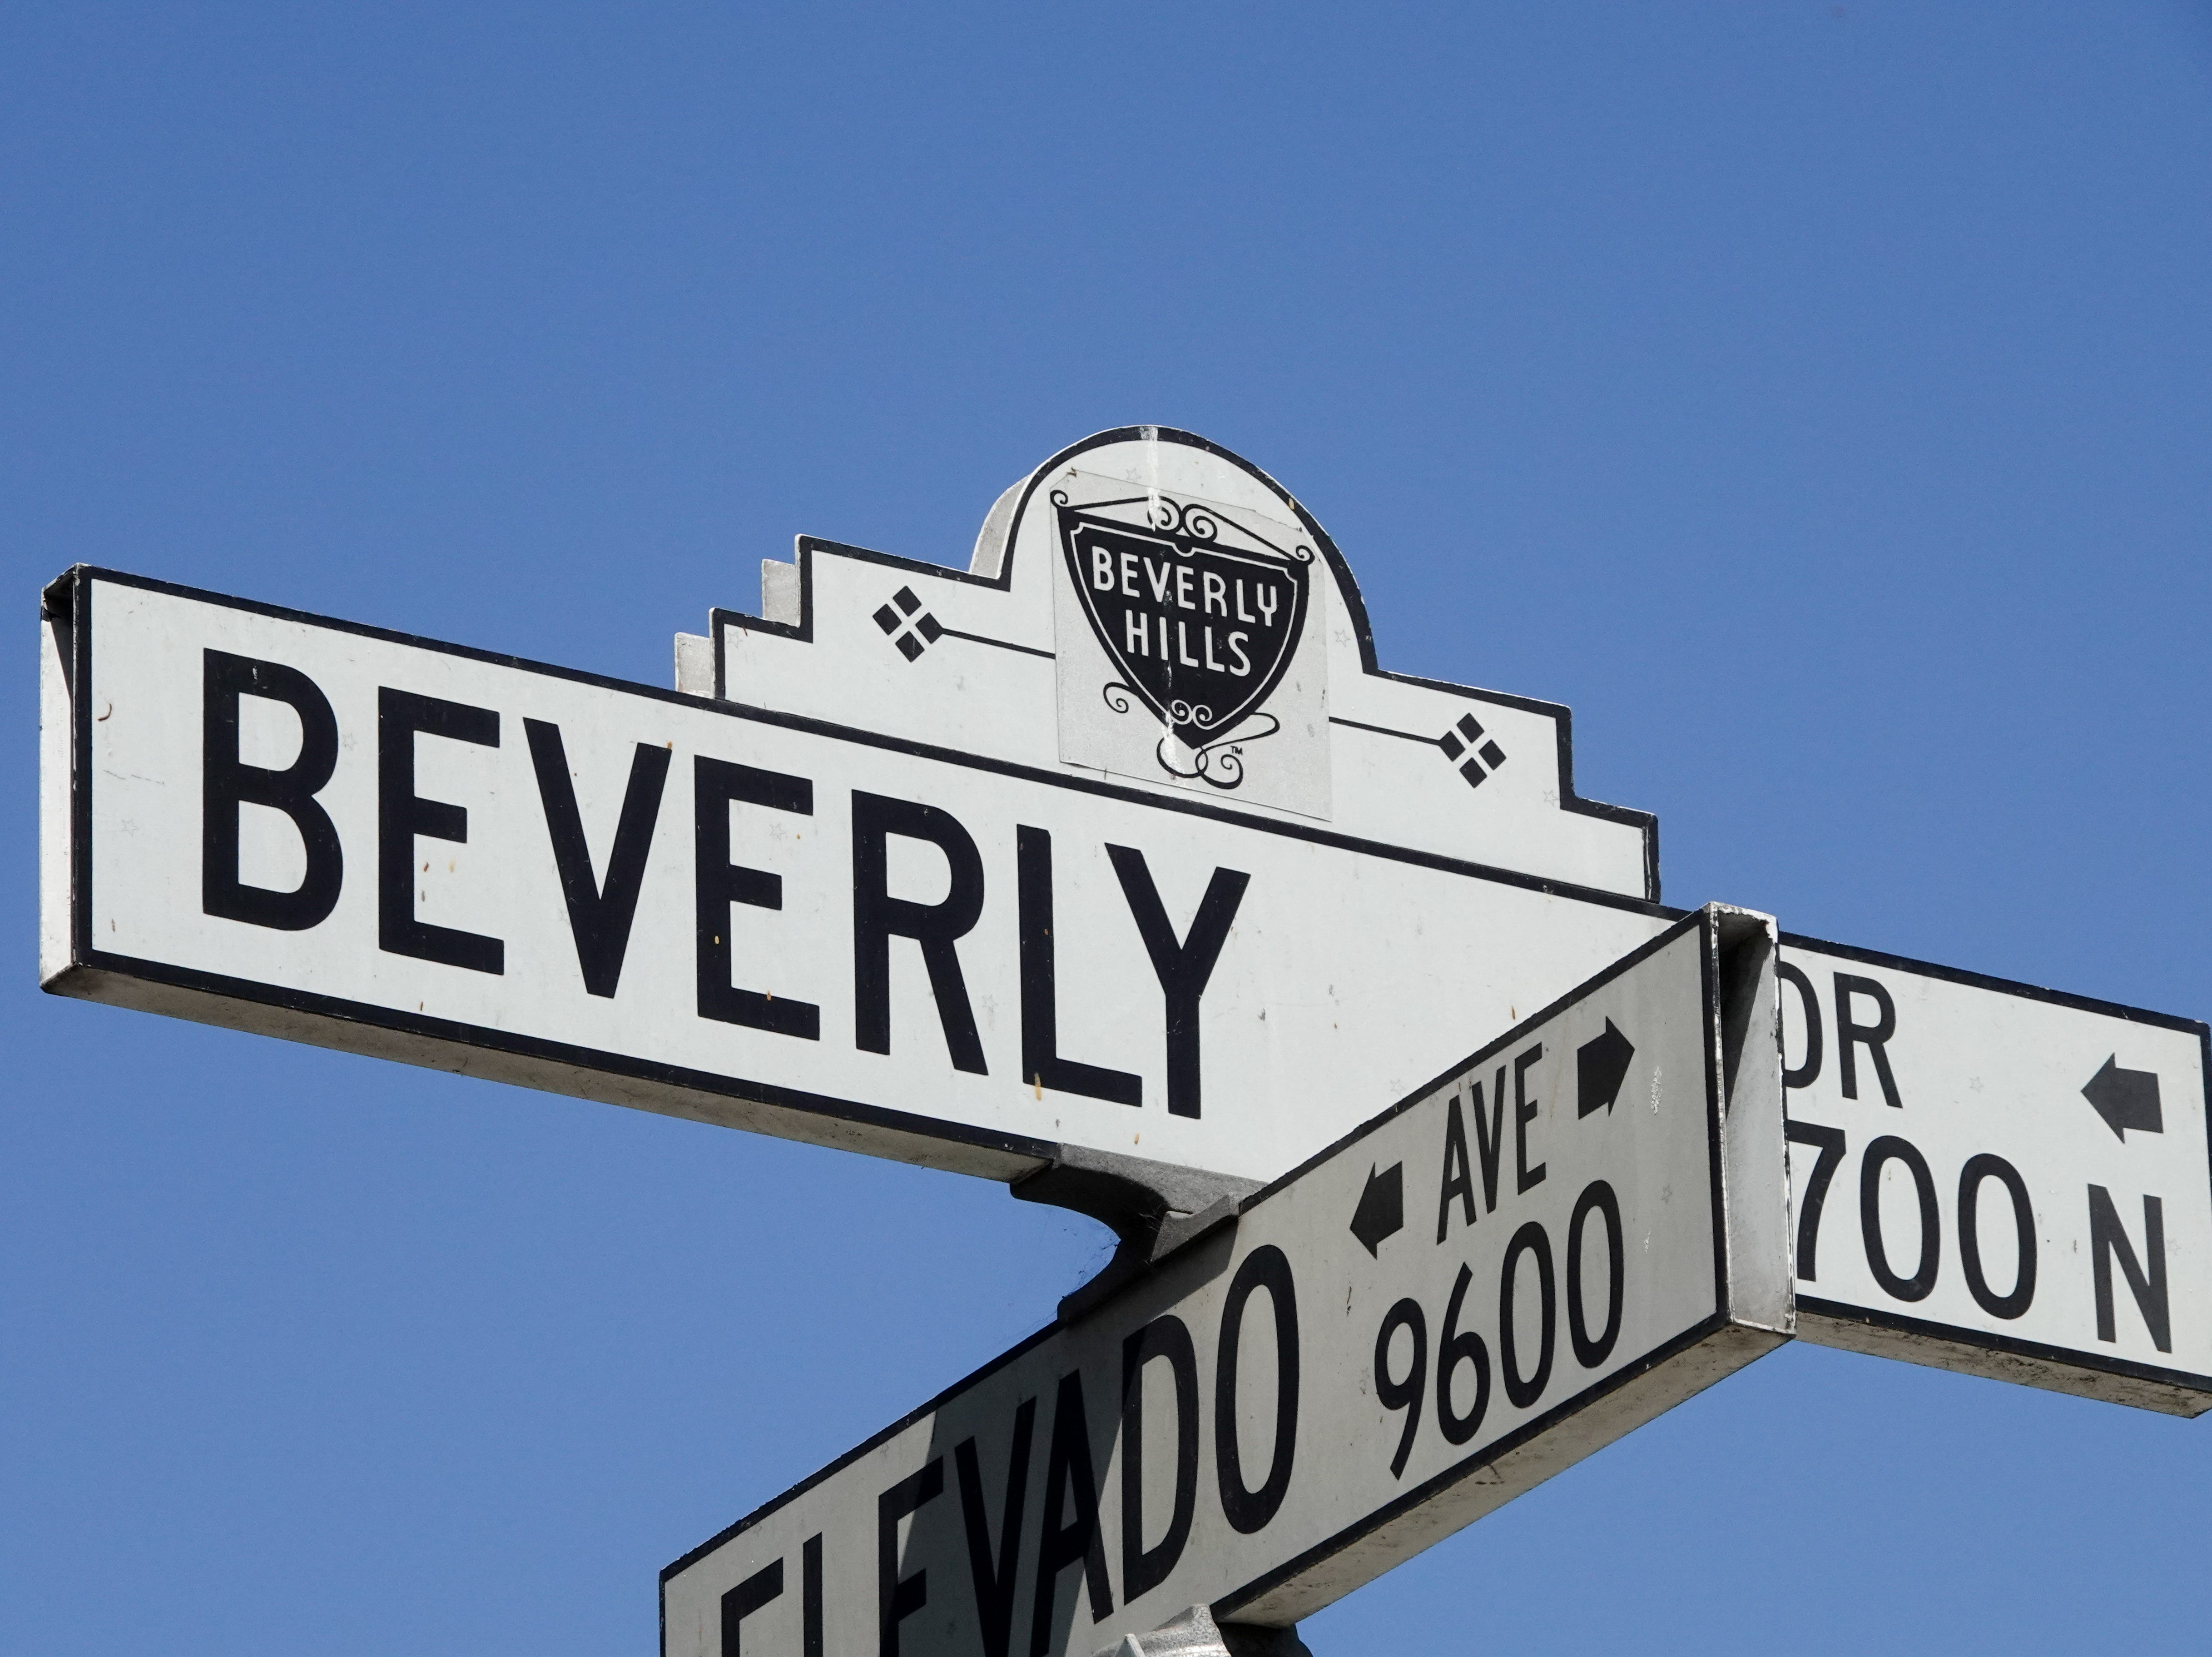 Next stop: Beverly Hills. The corner of N. Beverly Drive and Elevado in Beverly Hills is just down the street from the fabled Beverly Hills Hotel, and is a popular tourist spot for seeing giant mansions and oversize palm trees.